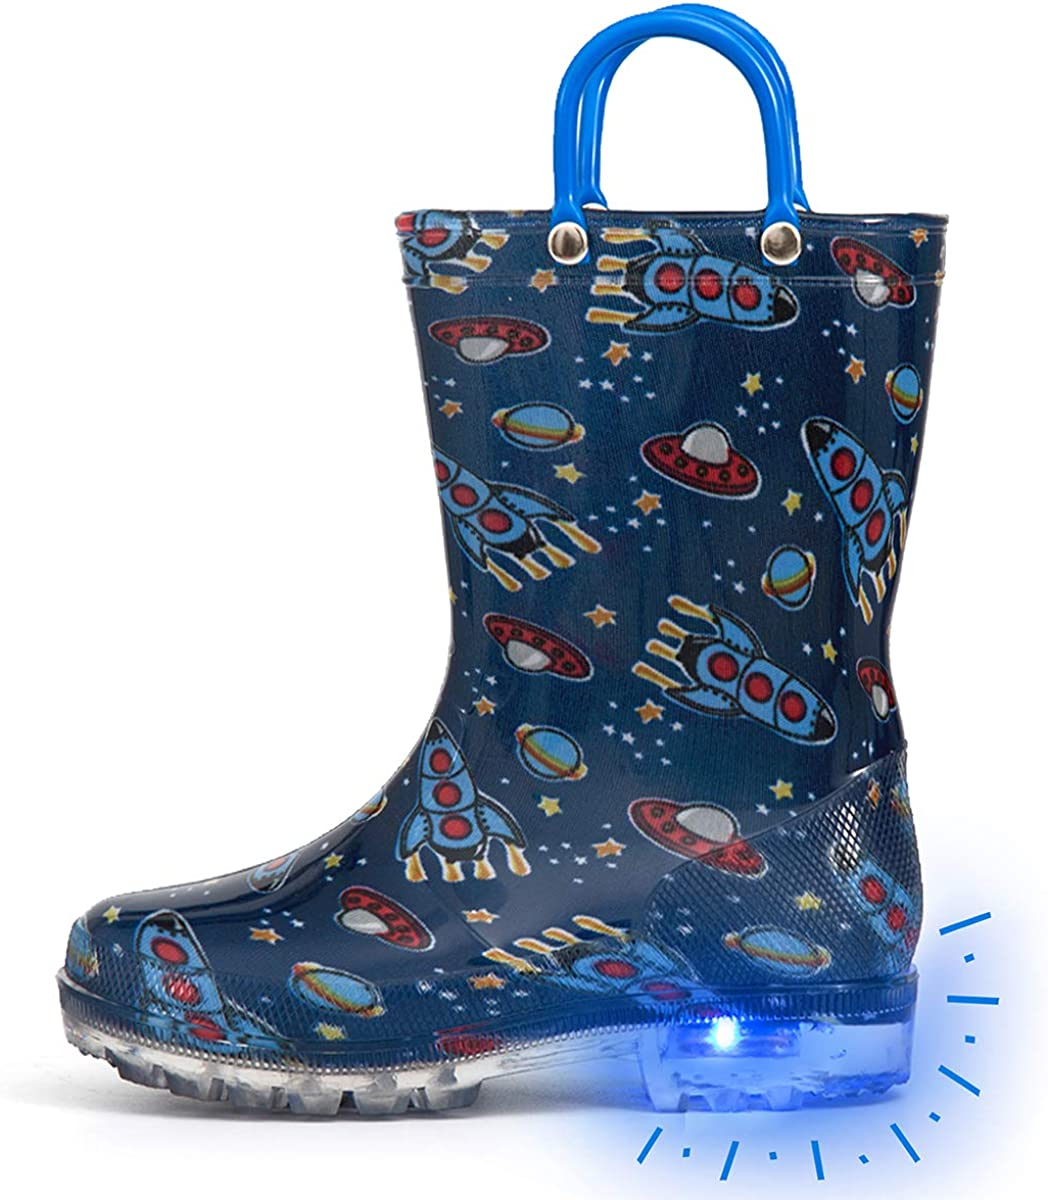 Outee Toddler Kids Adorable Printed Light Up Rain Boots